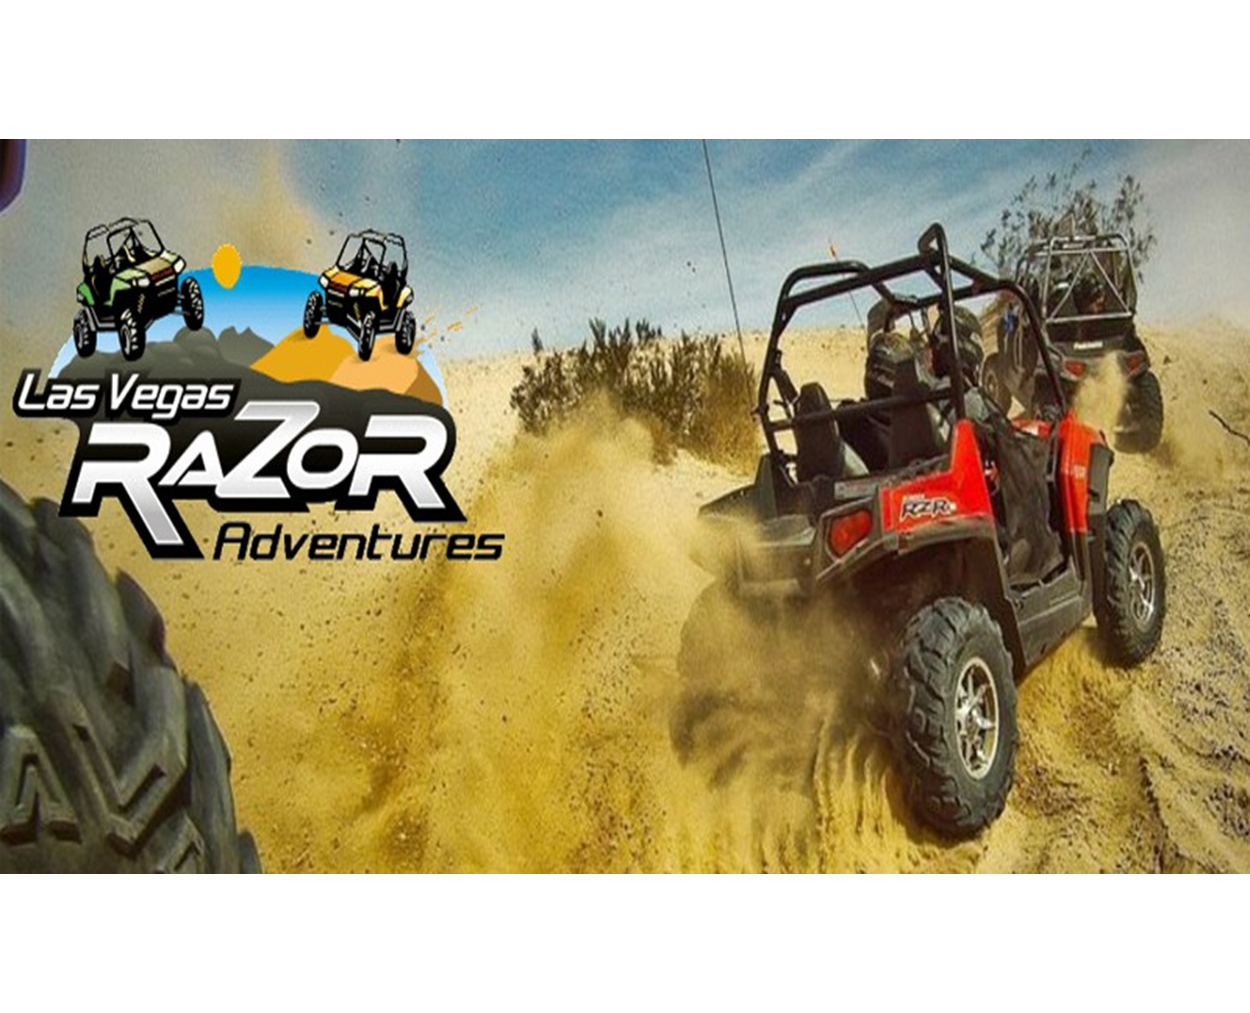 dune buggy off road tours